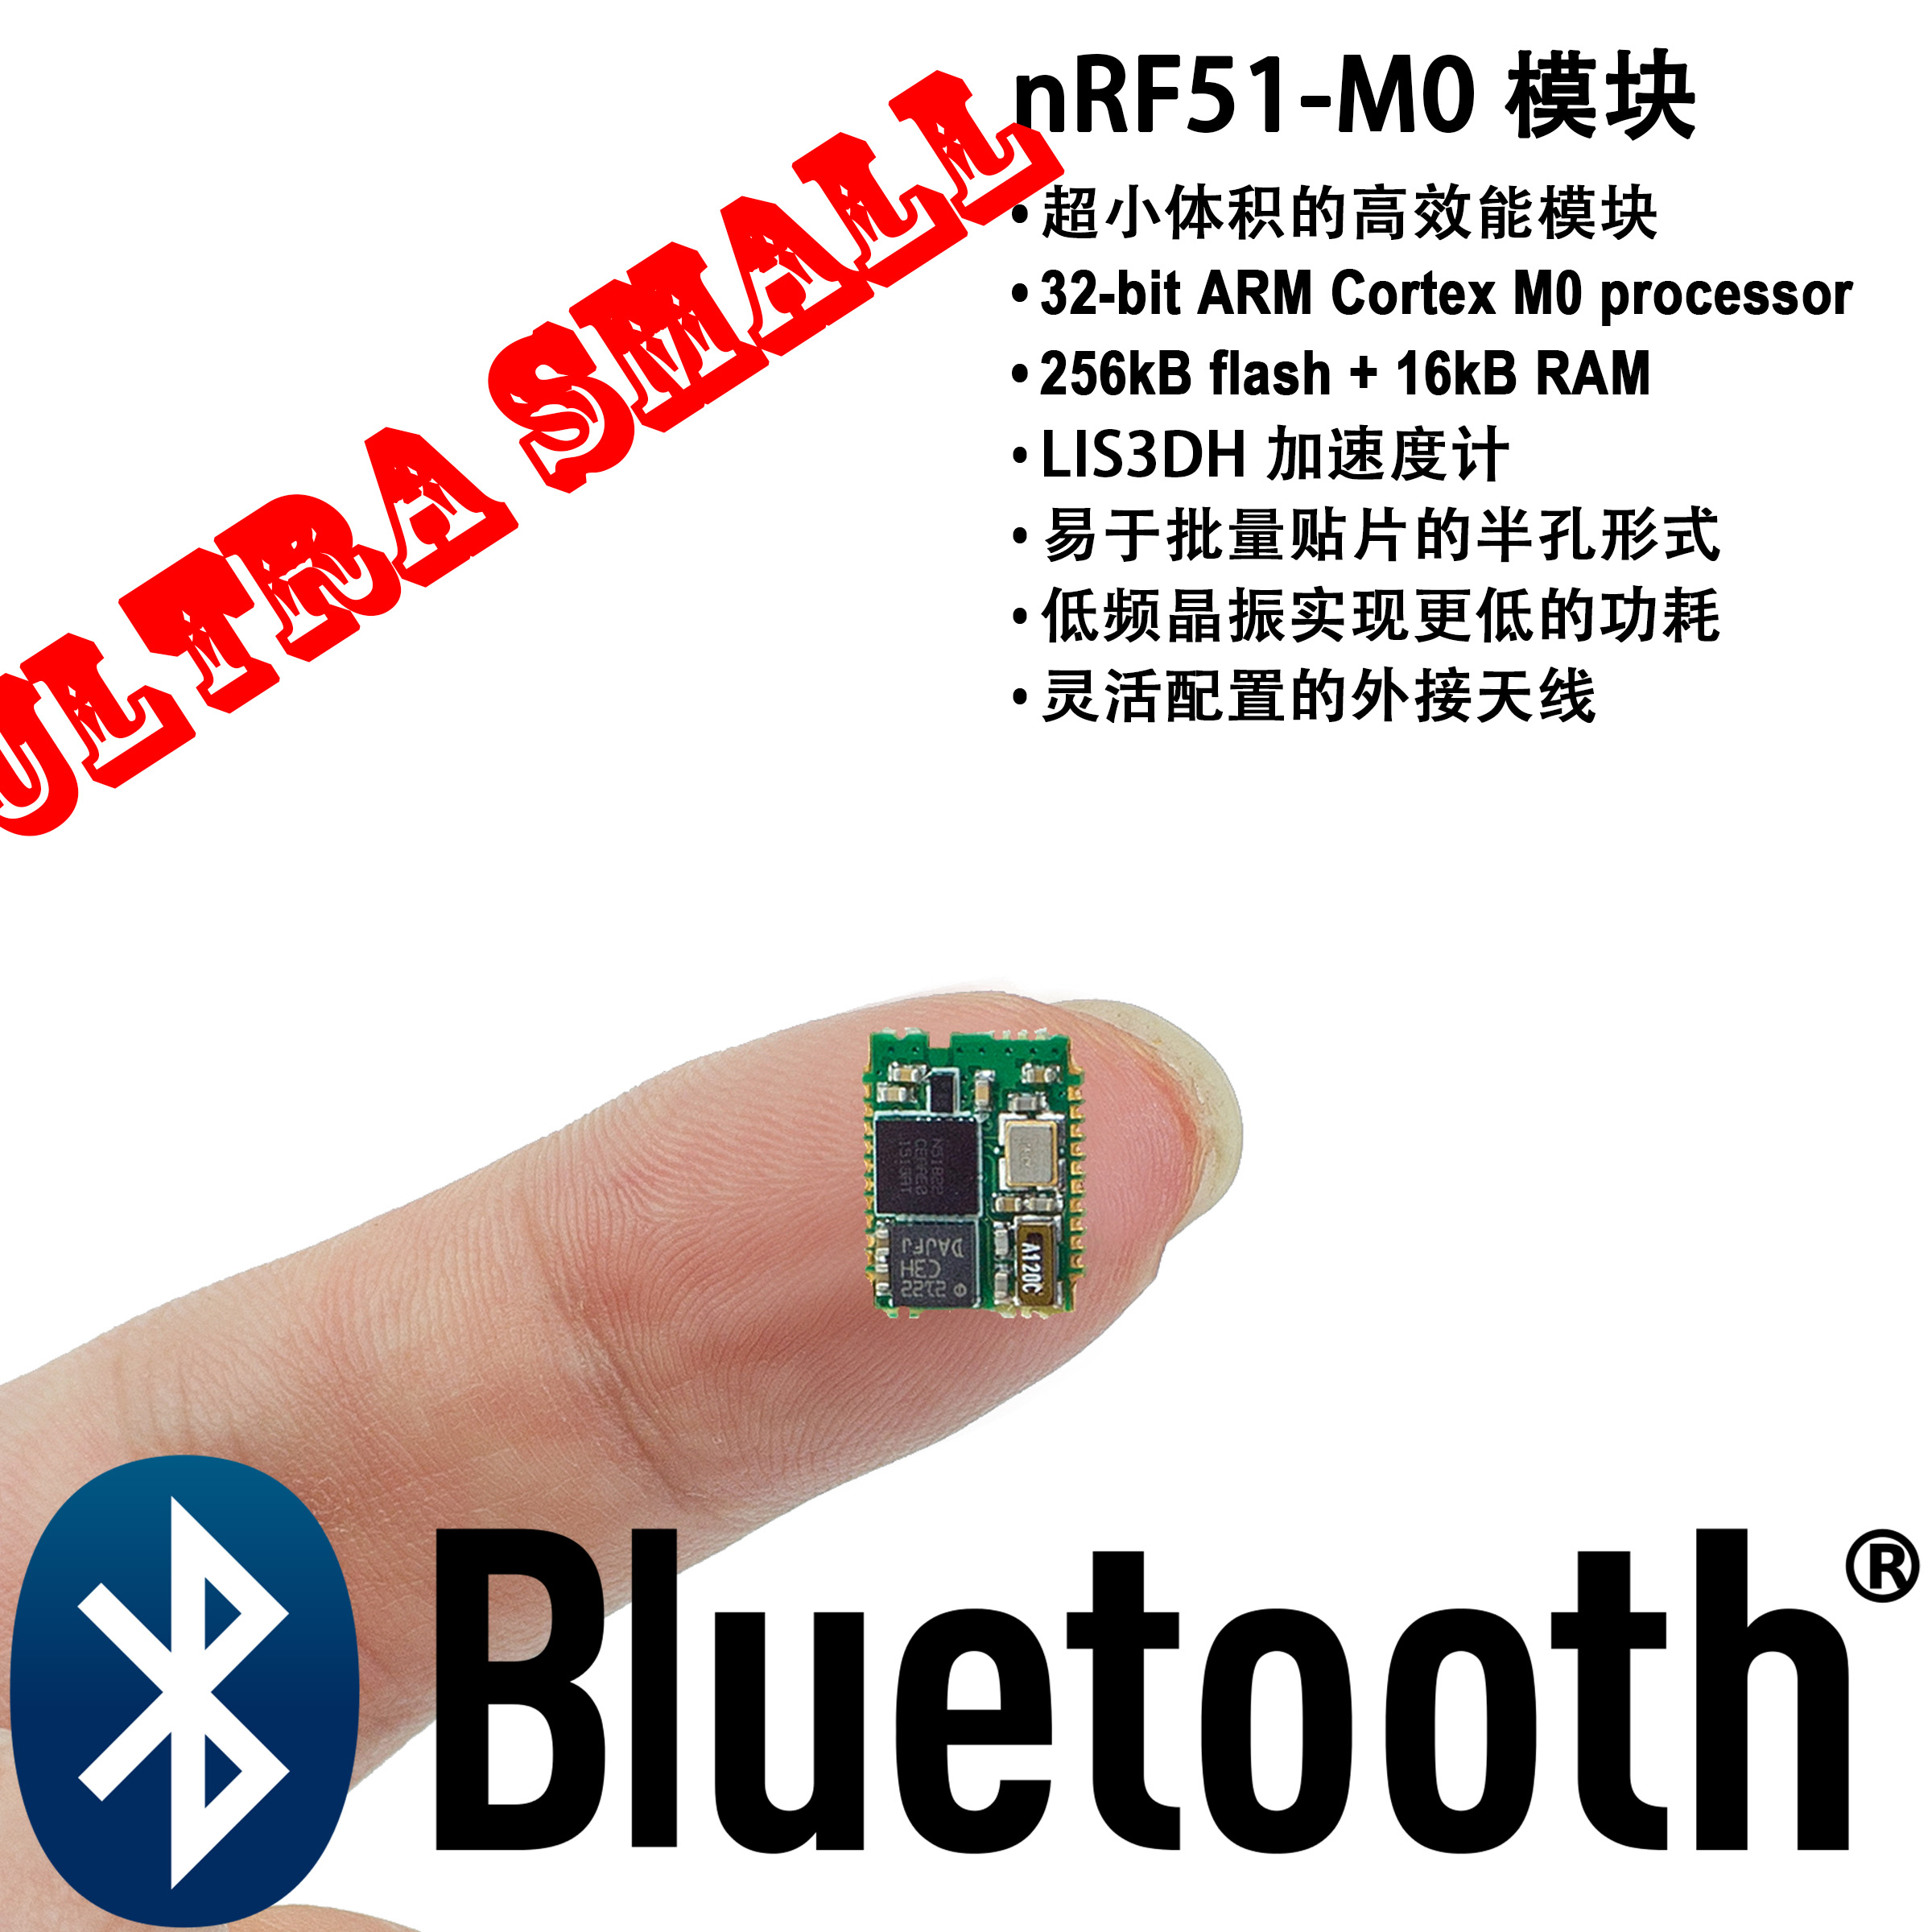 Ultra small size M0 nRF51822 Bluetooth module BLE board LIS3DH industry small Baidu Bracelet koozer xm490 sealed bearing mtb mountain bike hub quick release set bike hub 32 hole disc brake thru axle qr bicycle hubs